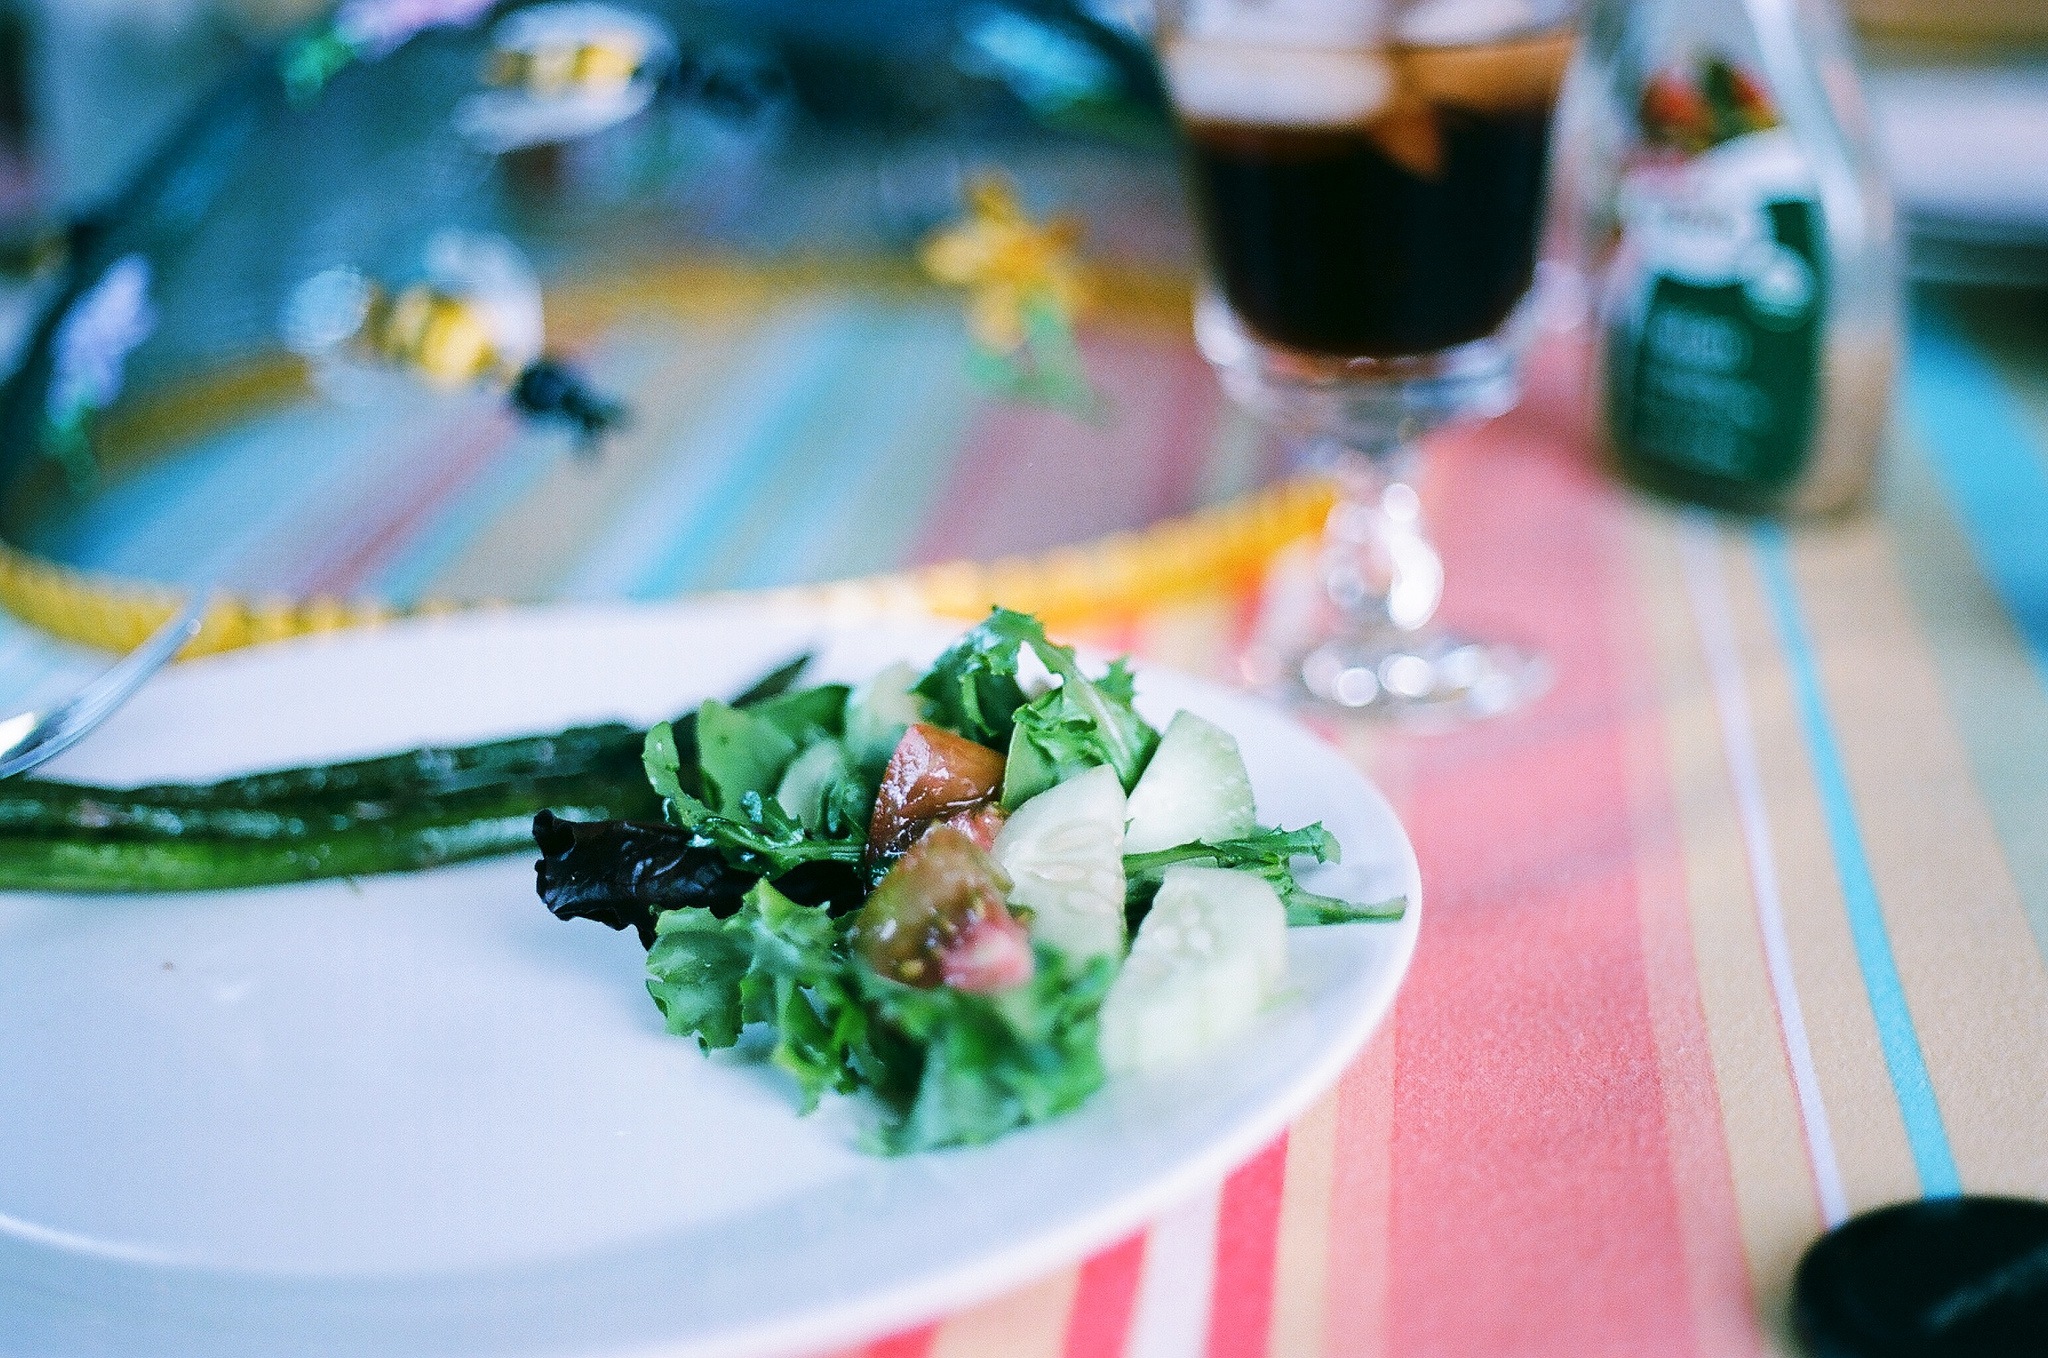 Summer Nights Kodak Ektar 100 Film - Dinner by Ellingsen Photography